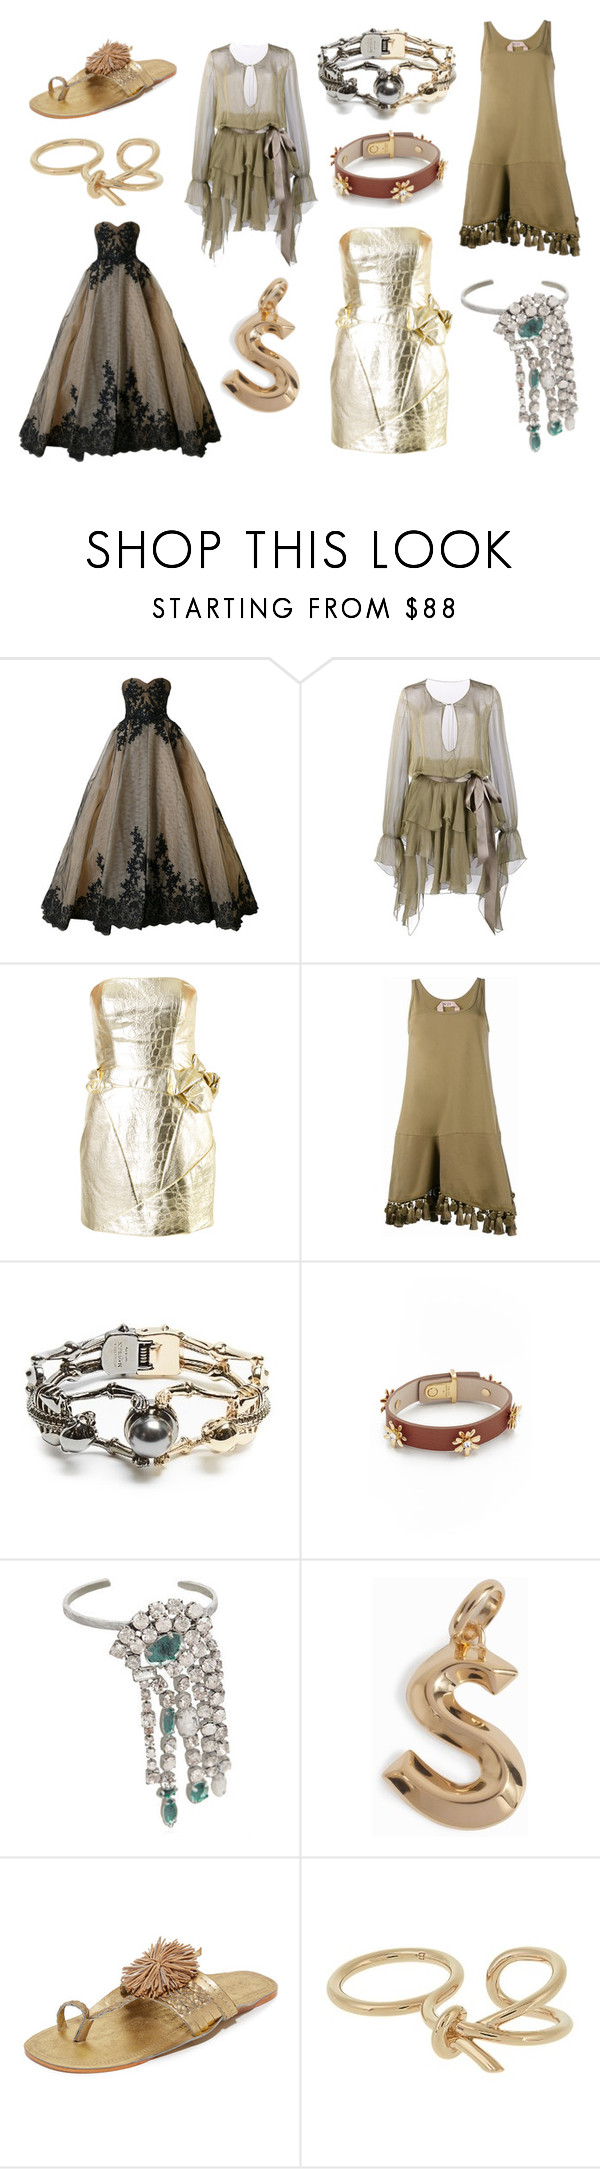 """""""Traditional Style"""" by donna-wang1 ❤ liked on Polyvore featuring Mikael D, Alexandre Vauthier, Rubin Singer, N°21, Alexander McQueen, Kate Spade, Maison Margiela, Monica Vinader, Figue and Balenciaga"""